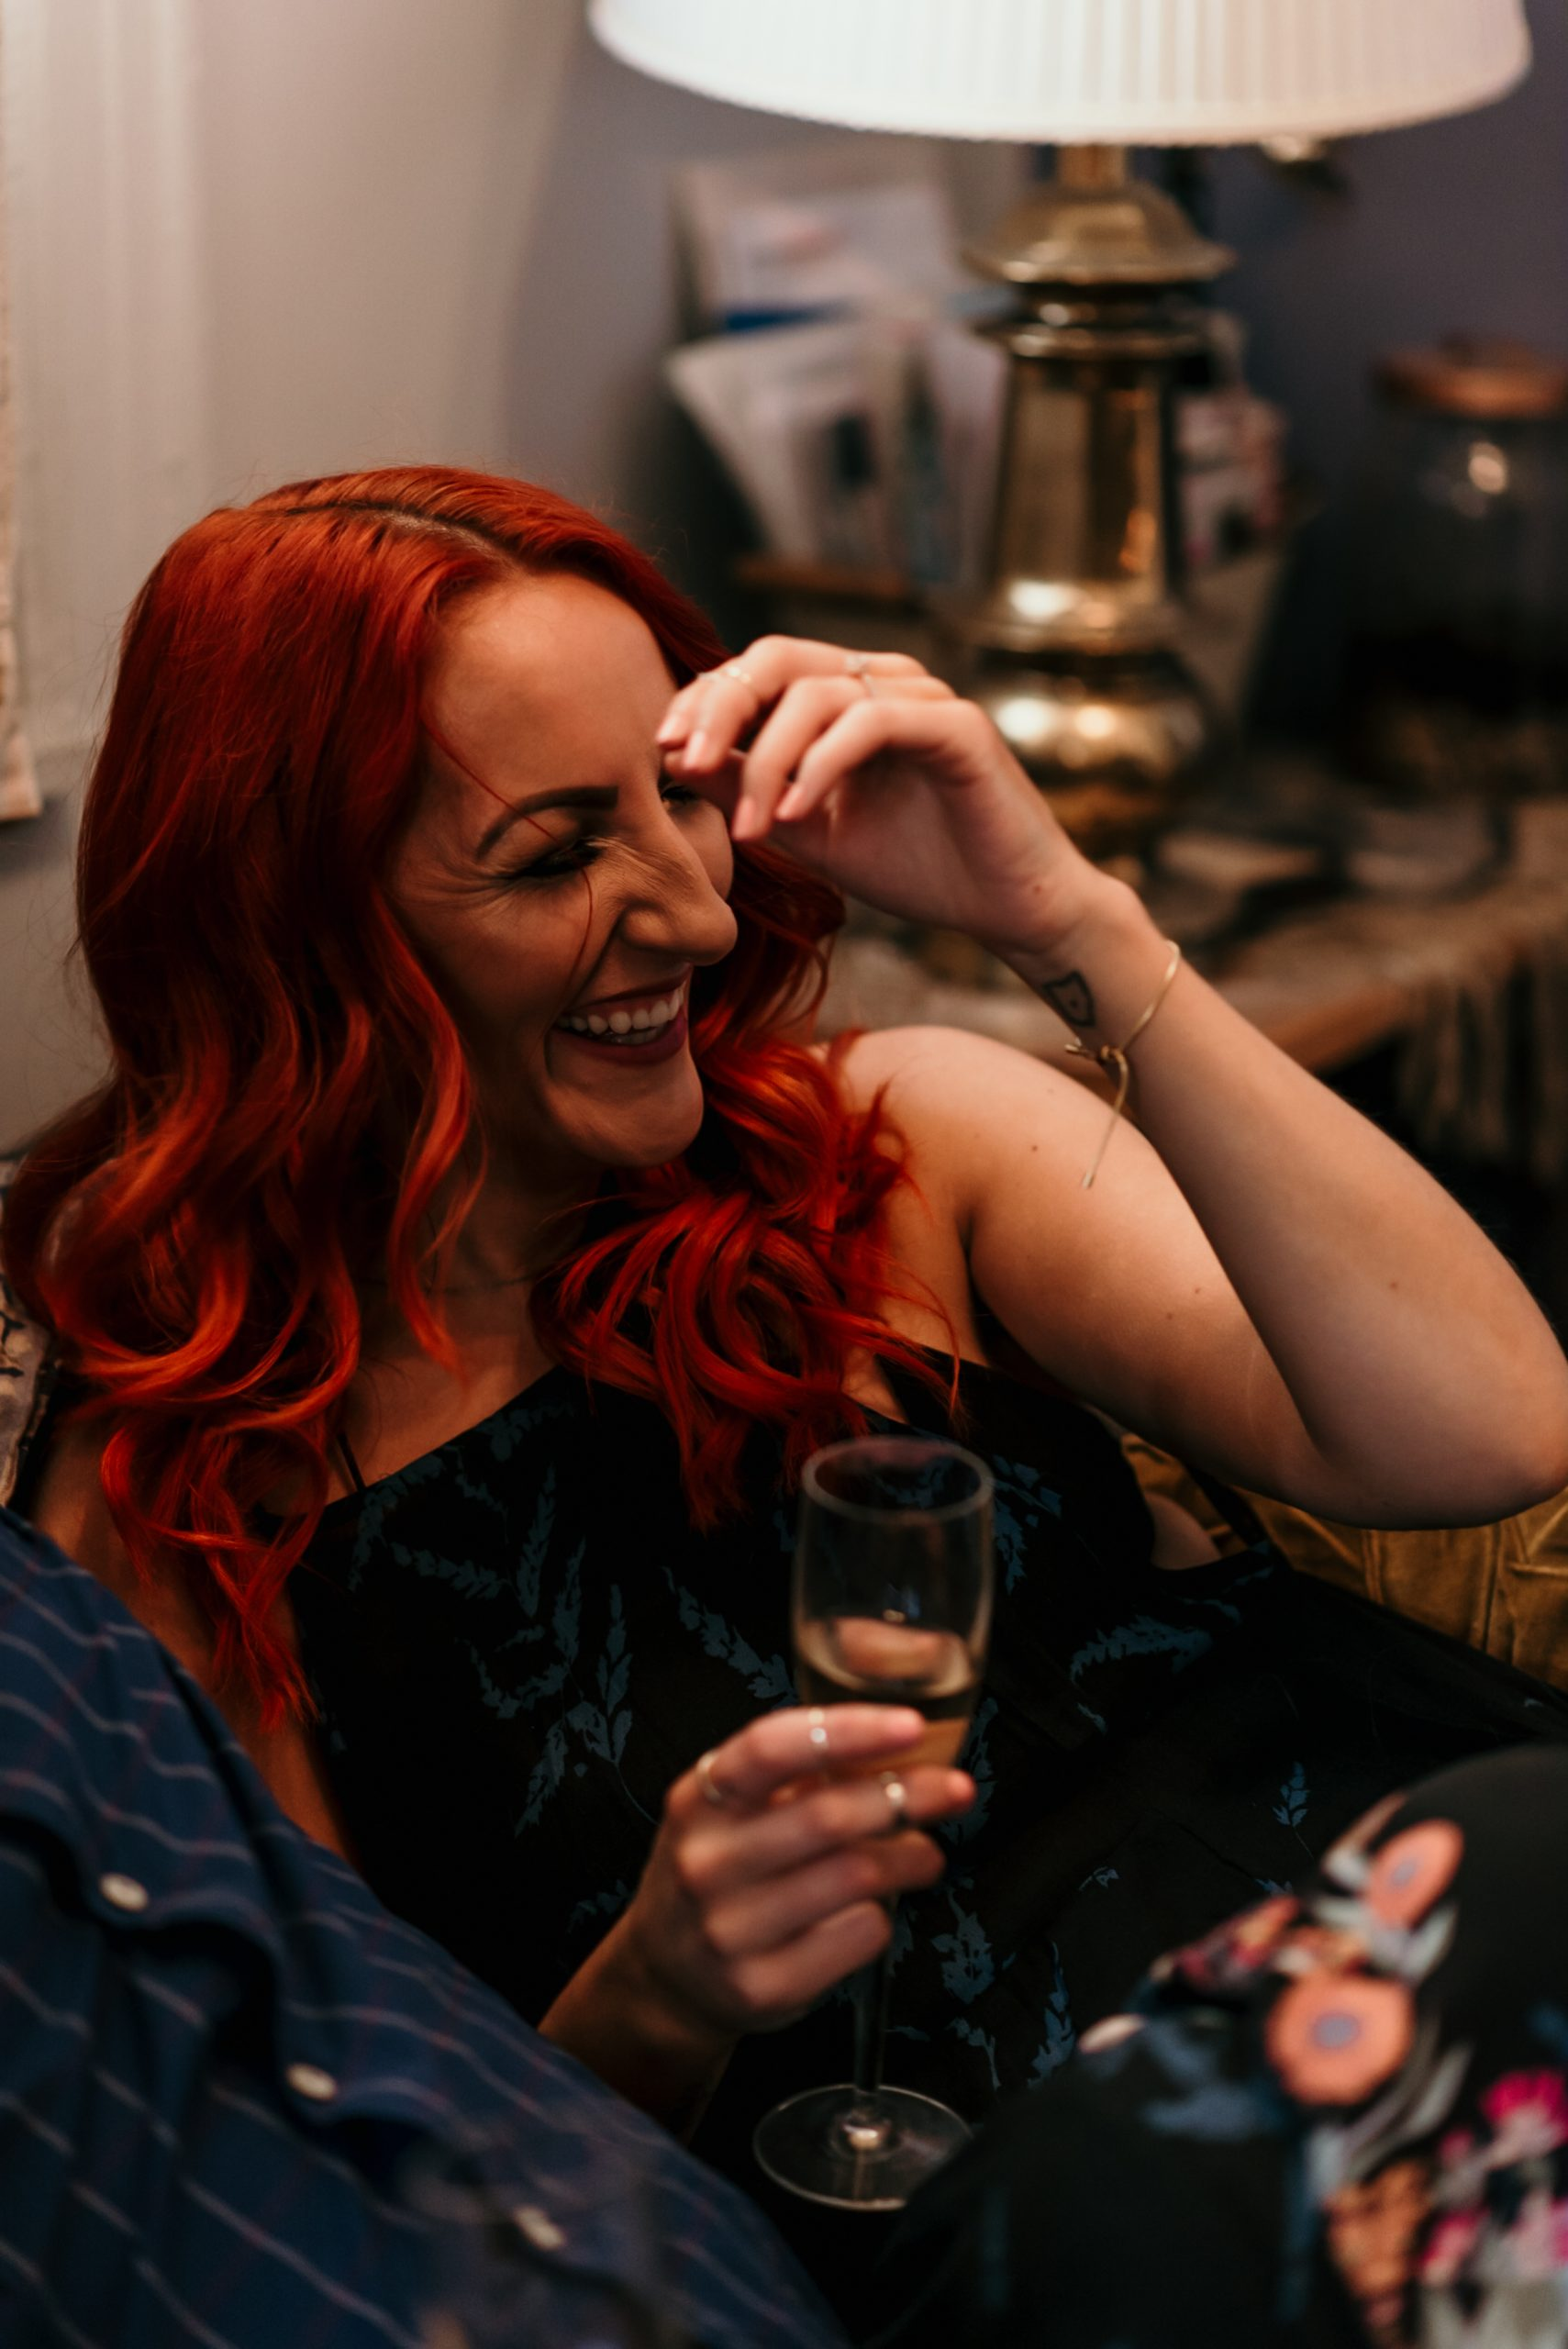 laughing-candid-girl-with-red-hair-engaged-suess-moments-photographer-brooklyn